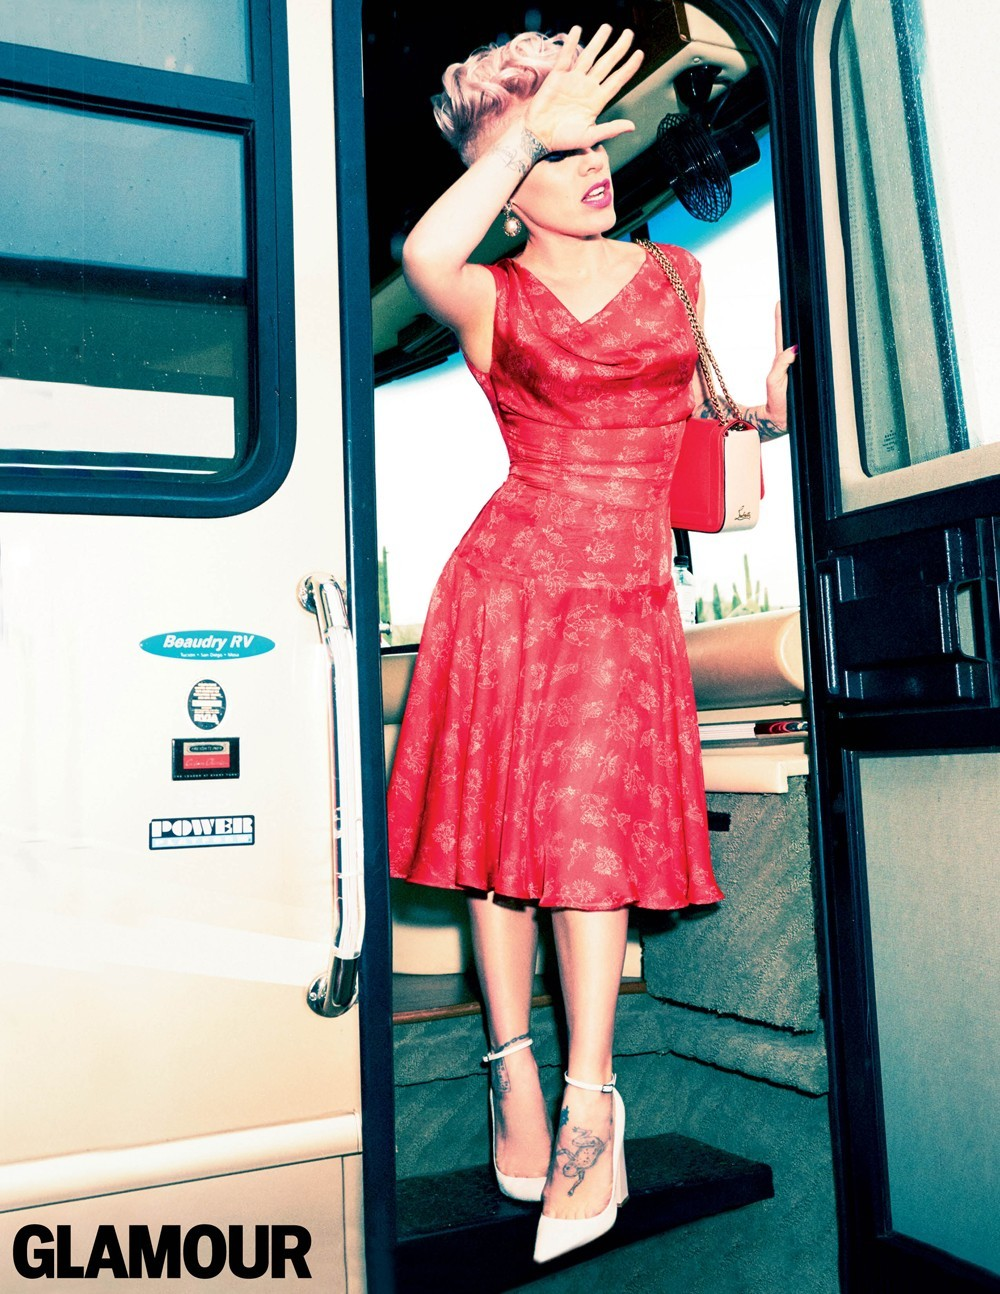 Pink Glamour red dress bus